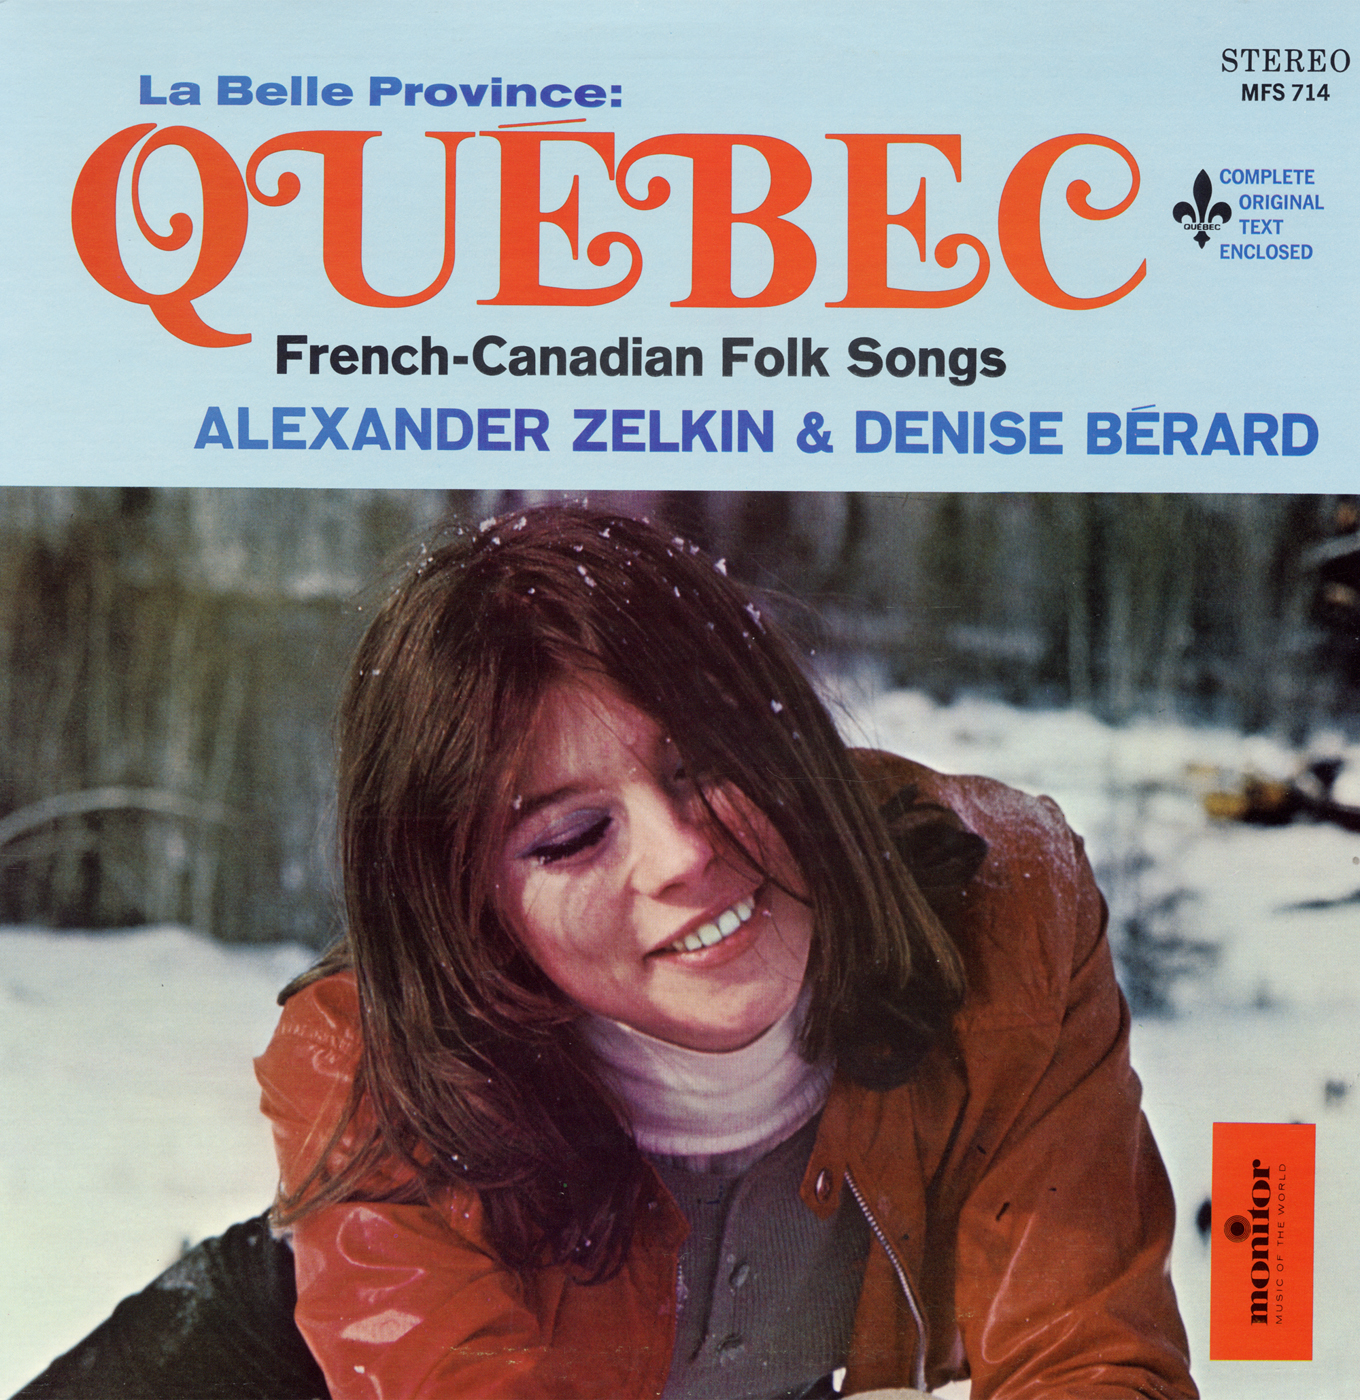 La Belle Province Québec: French-Canadian Folk Songs | Smithsonian